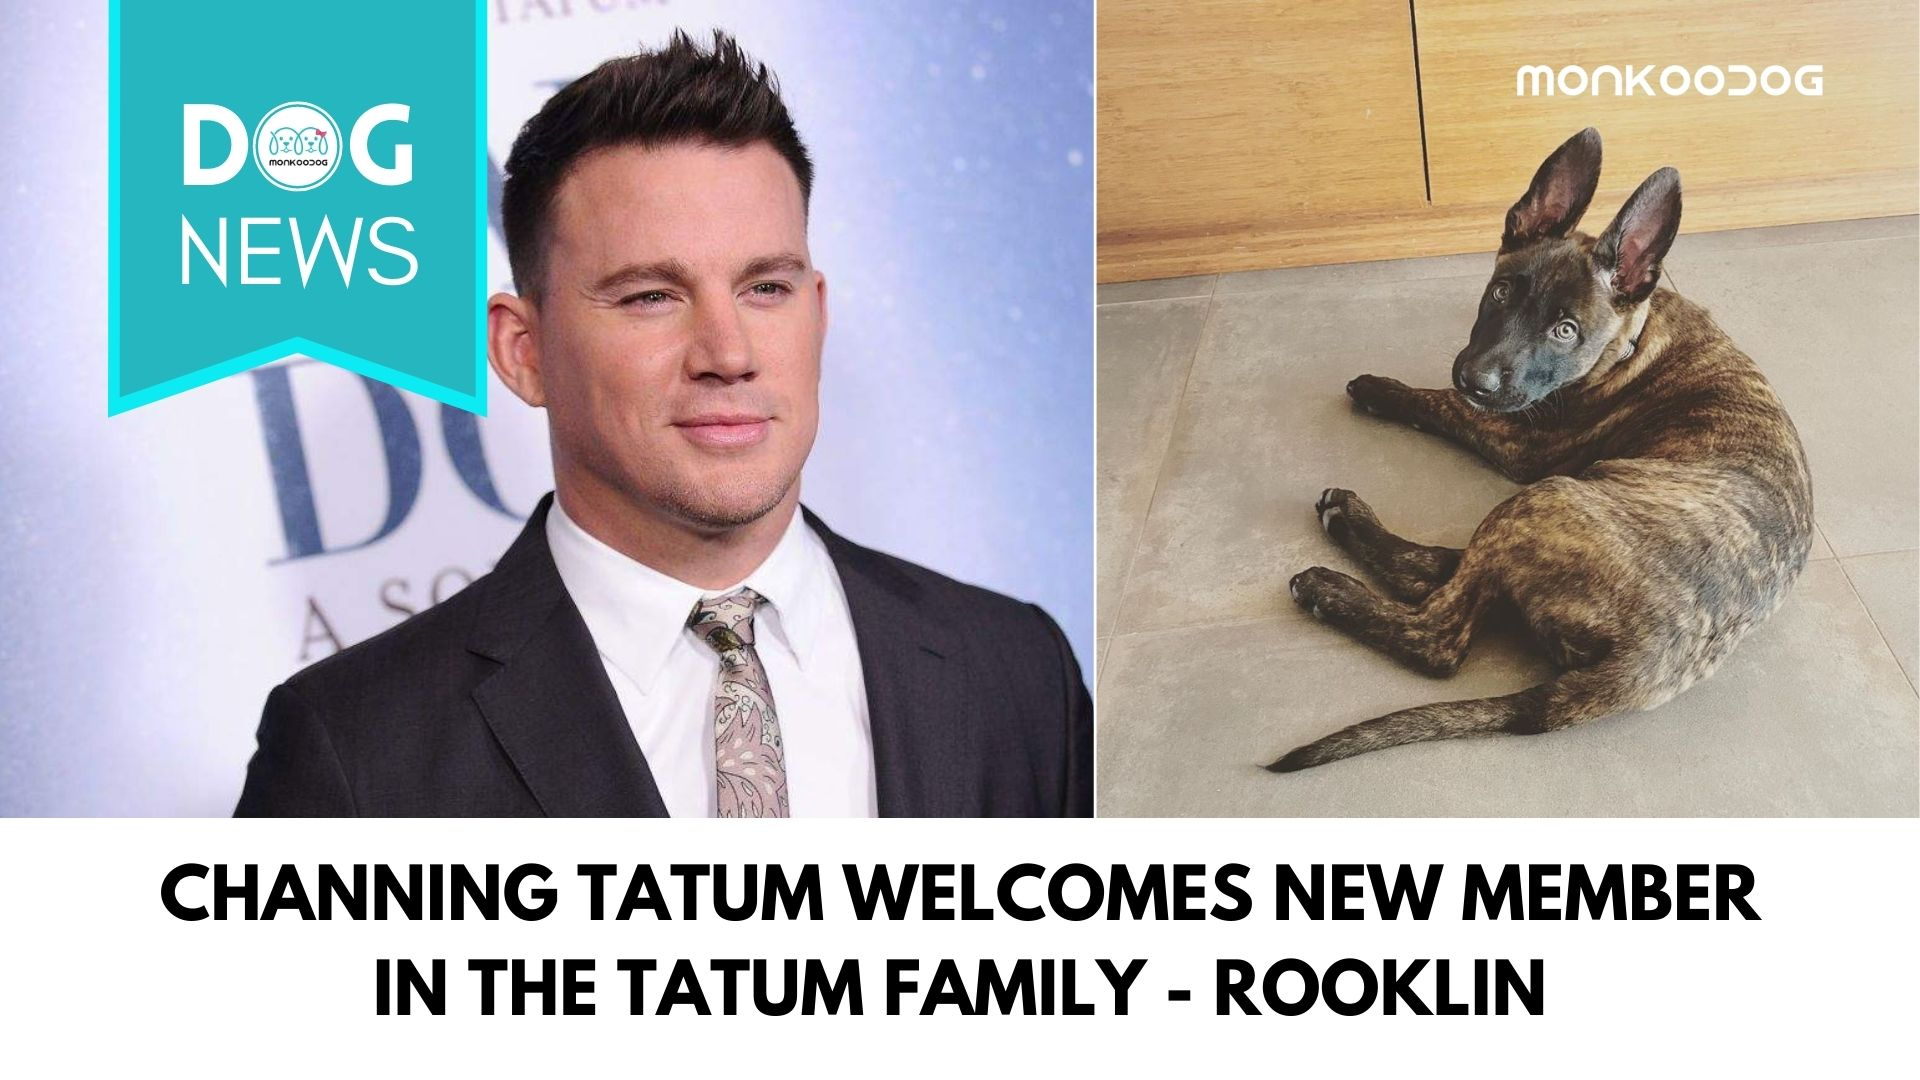 Channing Tatum Welcomes New Member In The Tatum Family While Shooting His New Movie - 'Dog'.